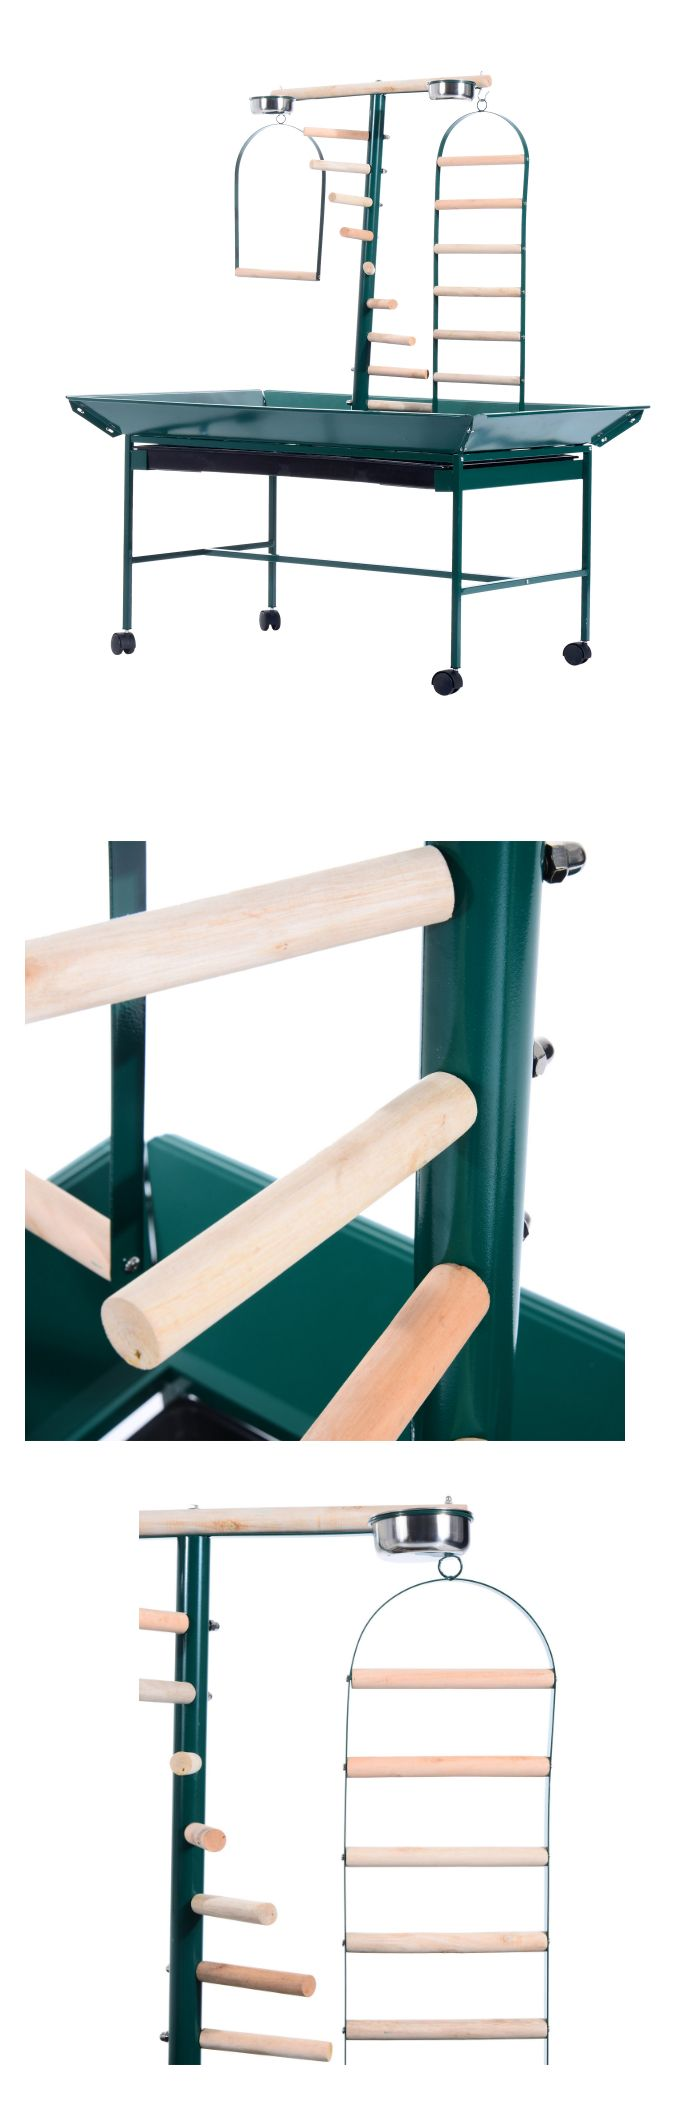 Cage Stands 116360: Macaw Parrot Stand Cockatoo Gym Perch African Play Ladder Playpen Large Bird -> BUY IT NOW ONLY: $118.97 on eBay!